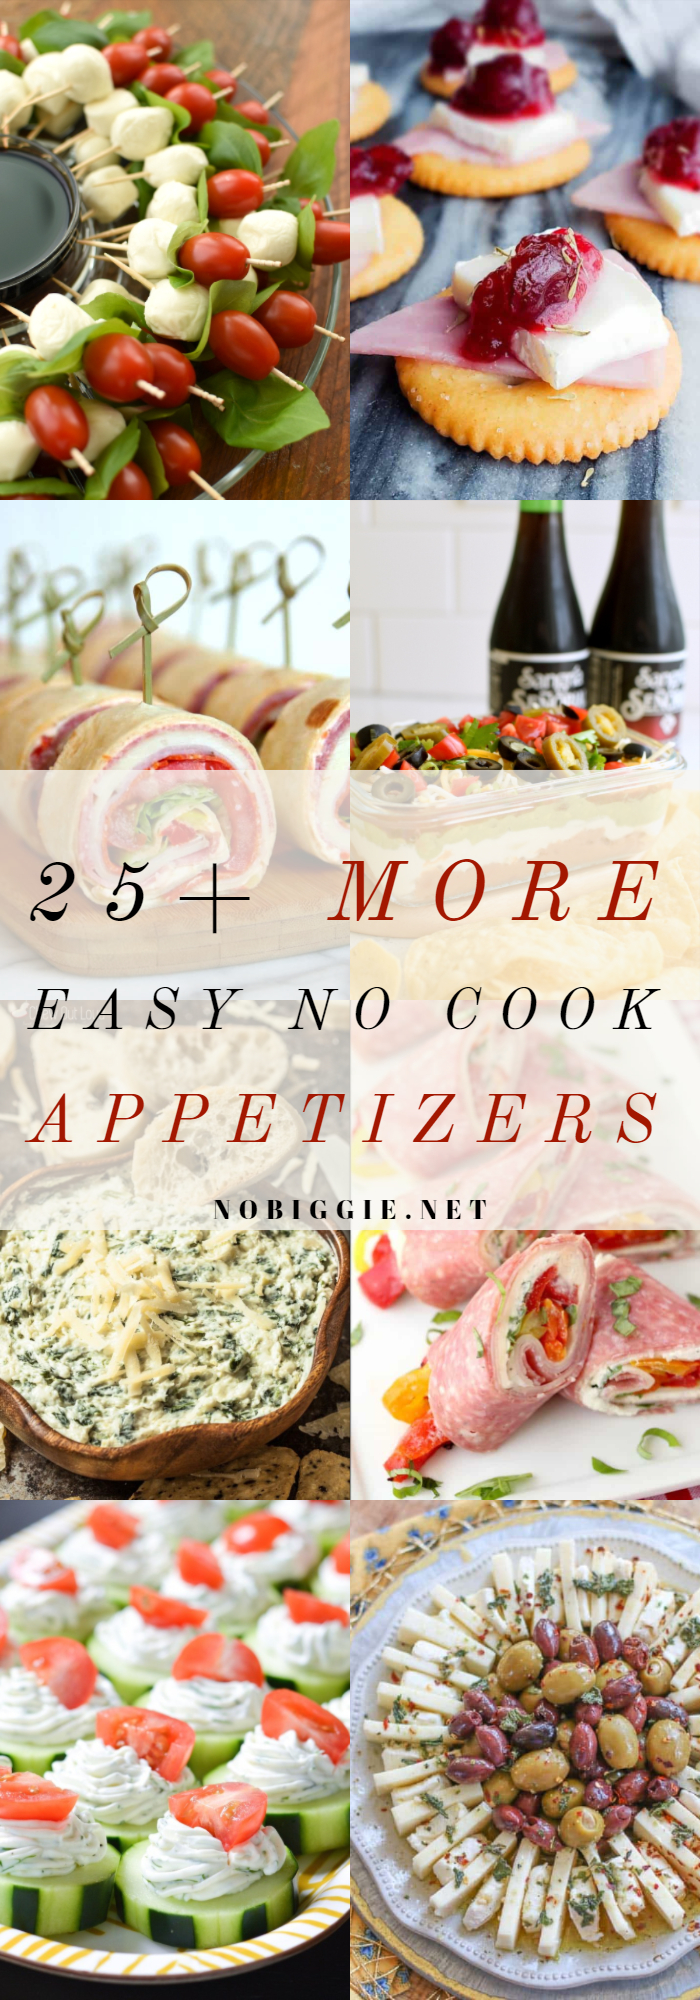 25+ MORE Easy No Cook Appetizers | NoBiggie.net